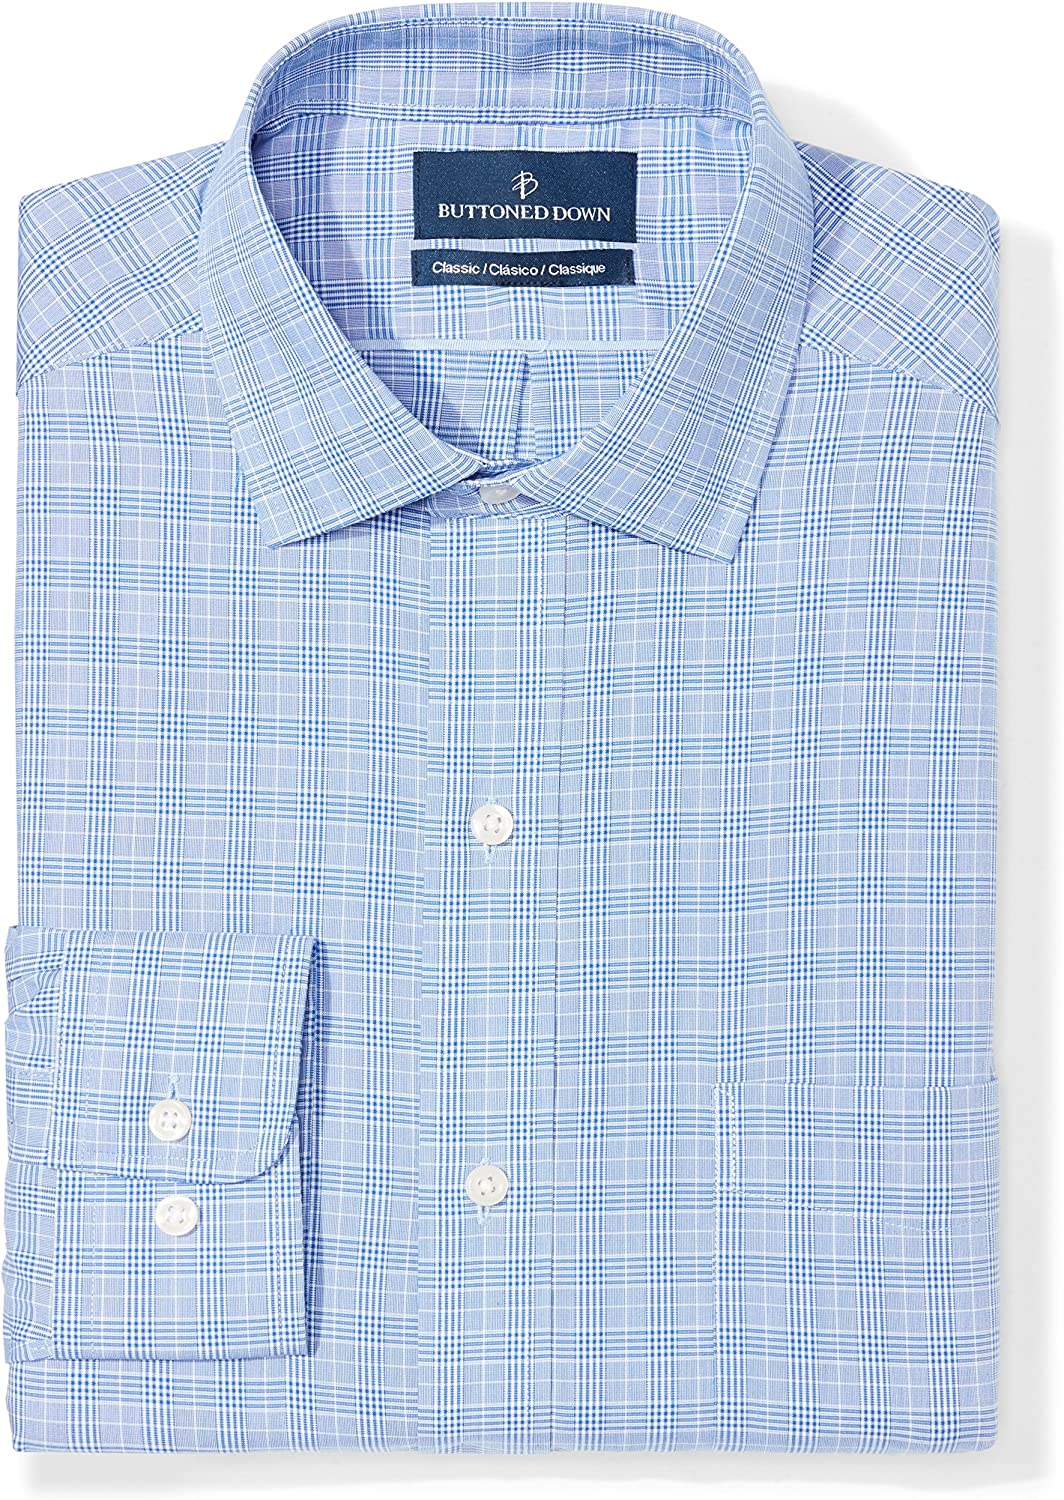 Brand - BUTTONED DOWN Men's Classic Fit Plaid Dress Shirt, Supima Cotton Non-Iron: Clothing